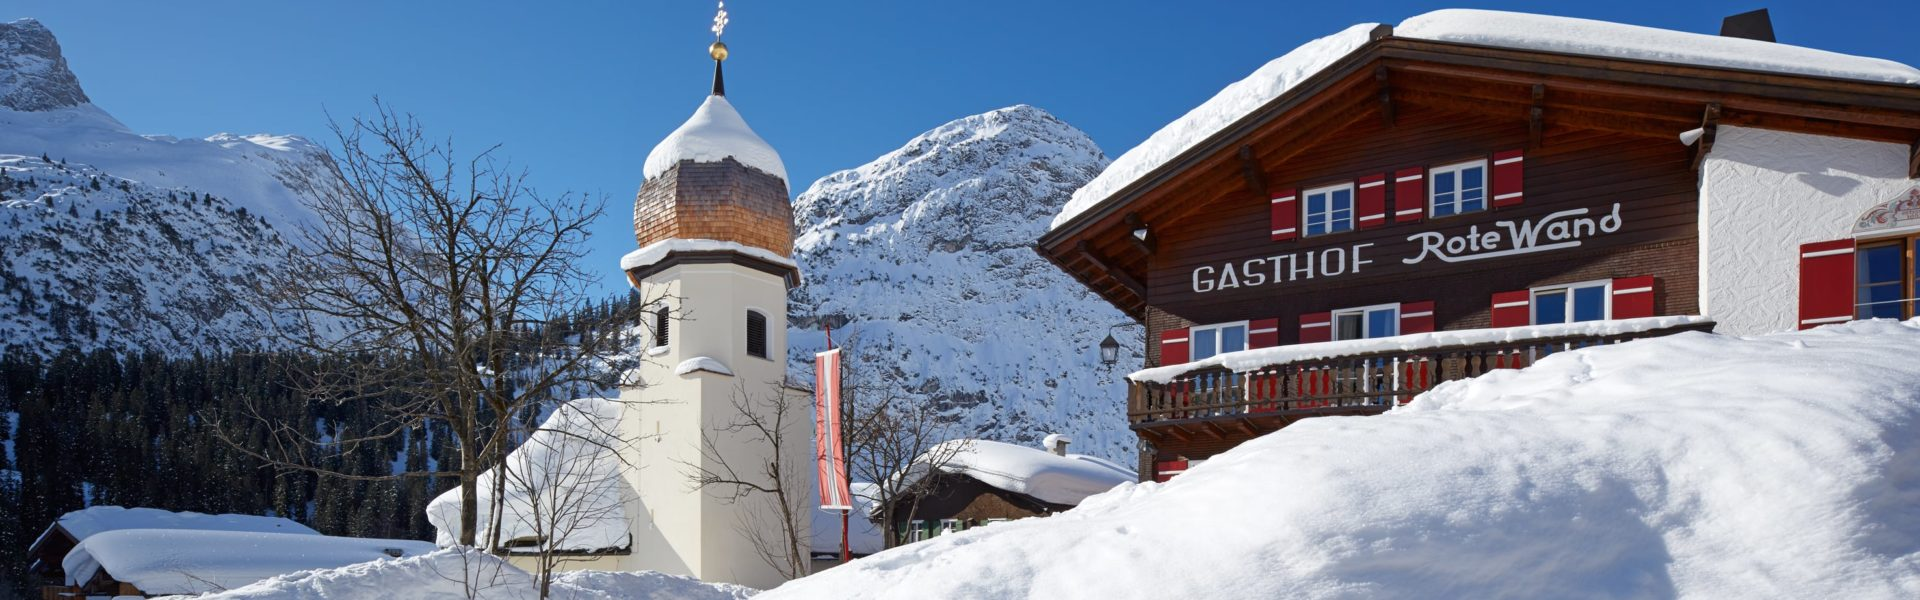 Top Family Familienhotel Rote Wand, Lech am Arlberg © Hotel Rote Wand